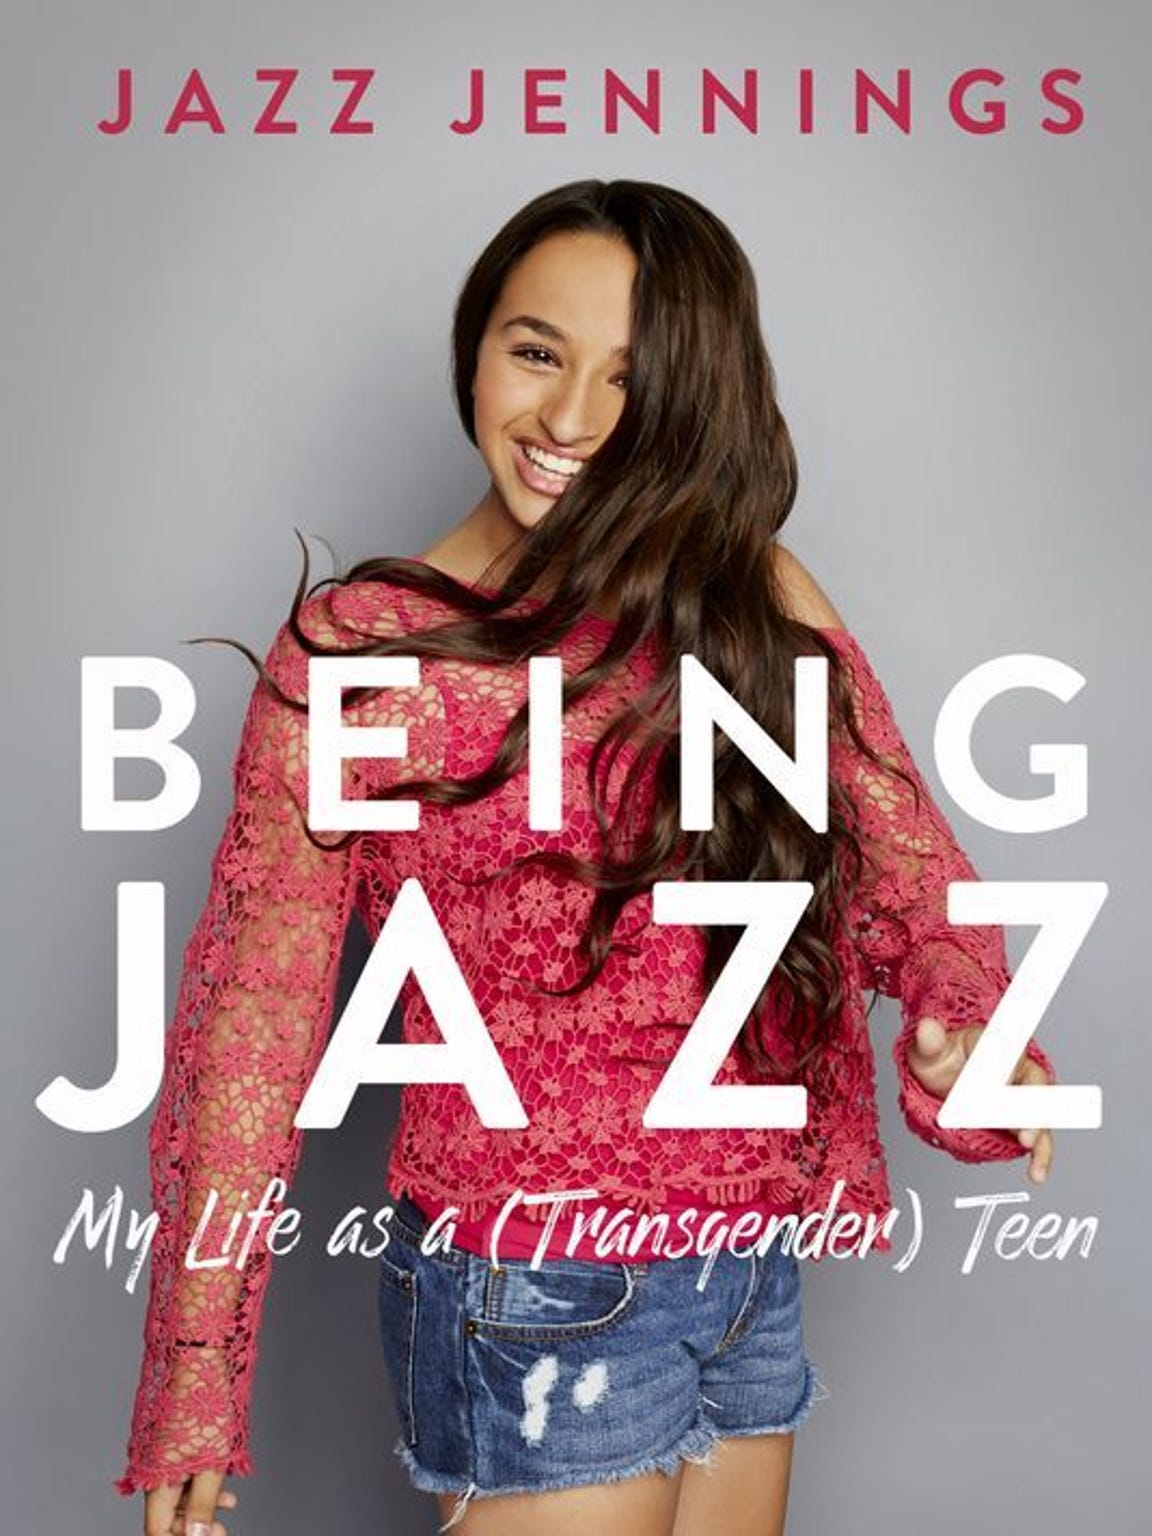 Jazz Jennings' memoir hit shelves last year.